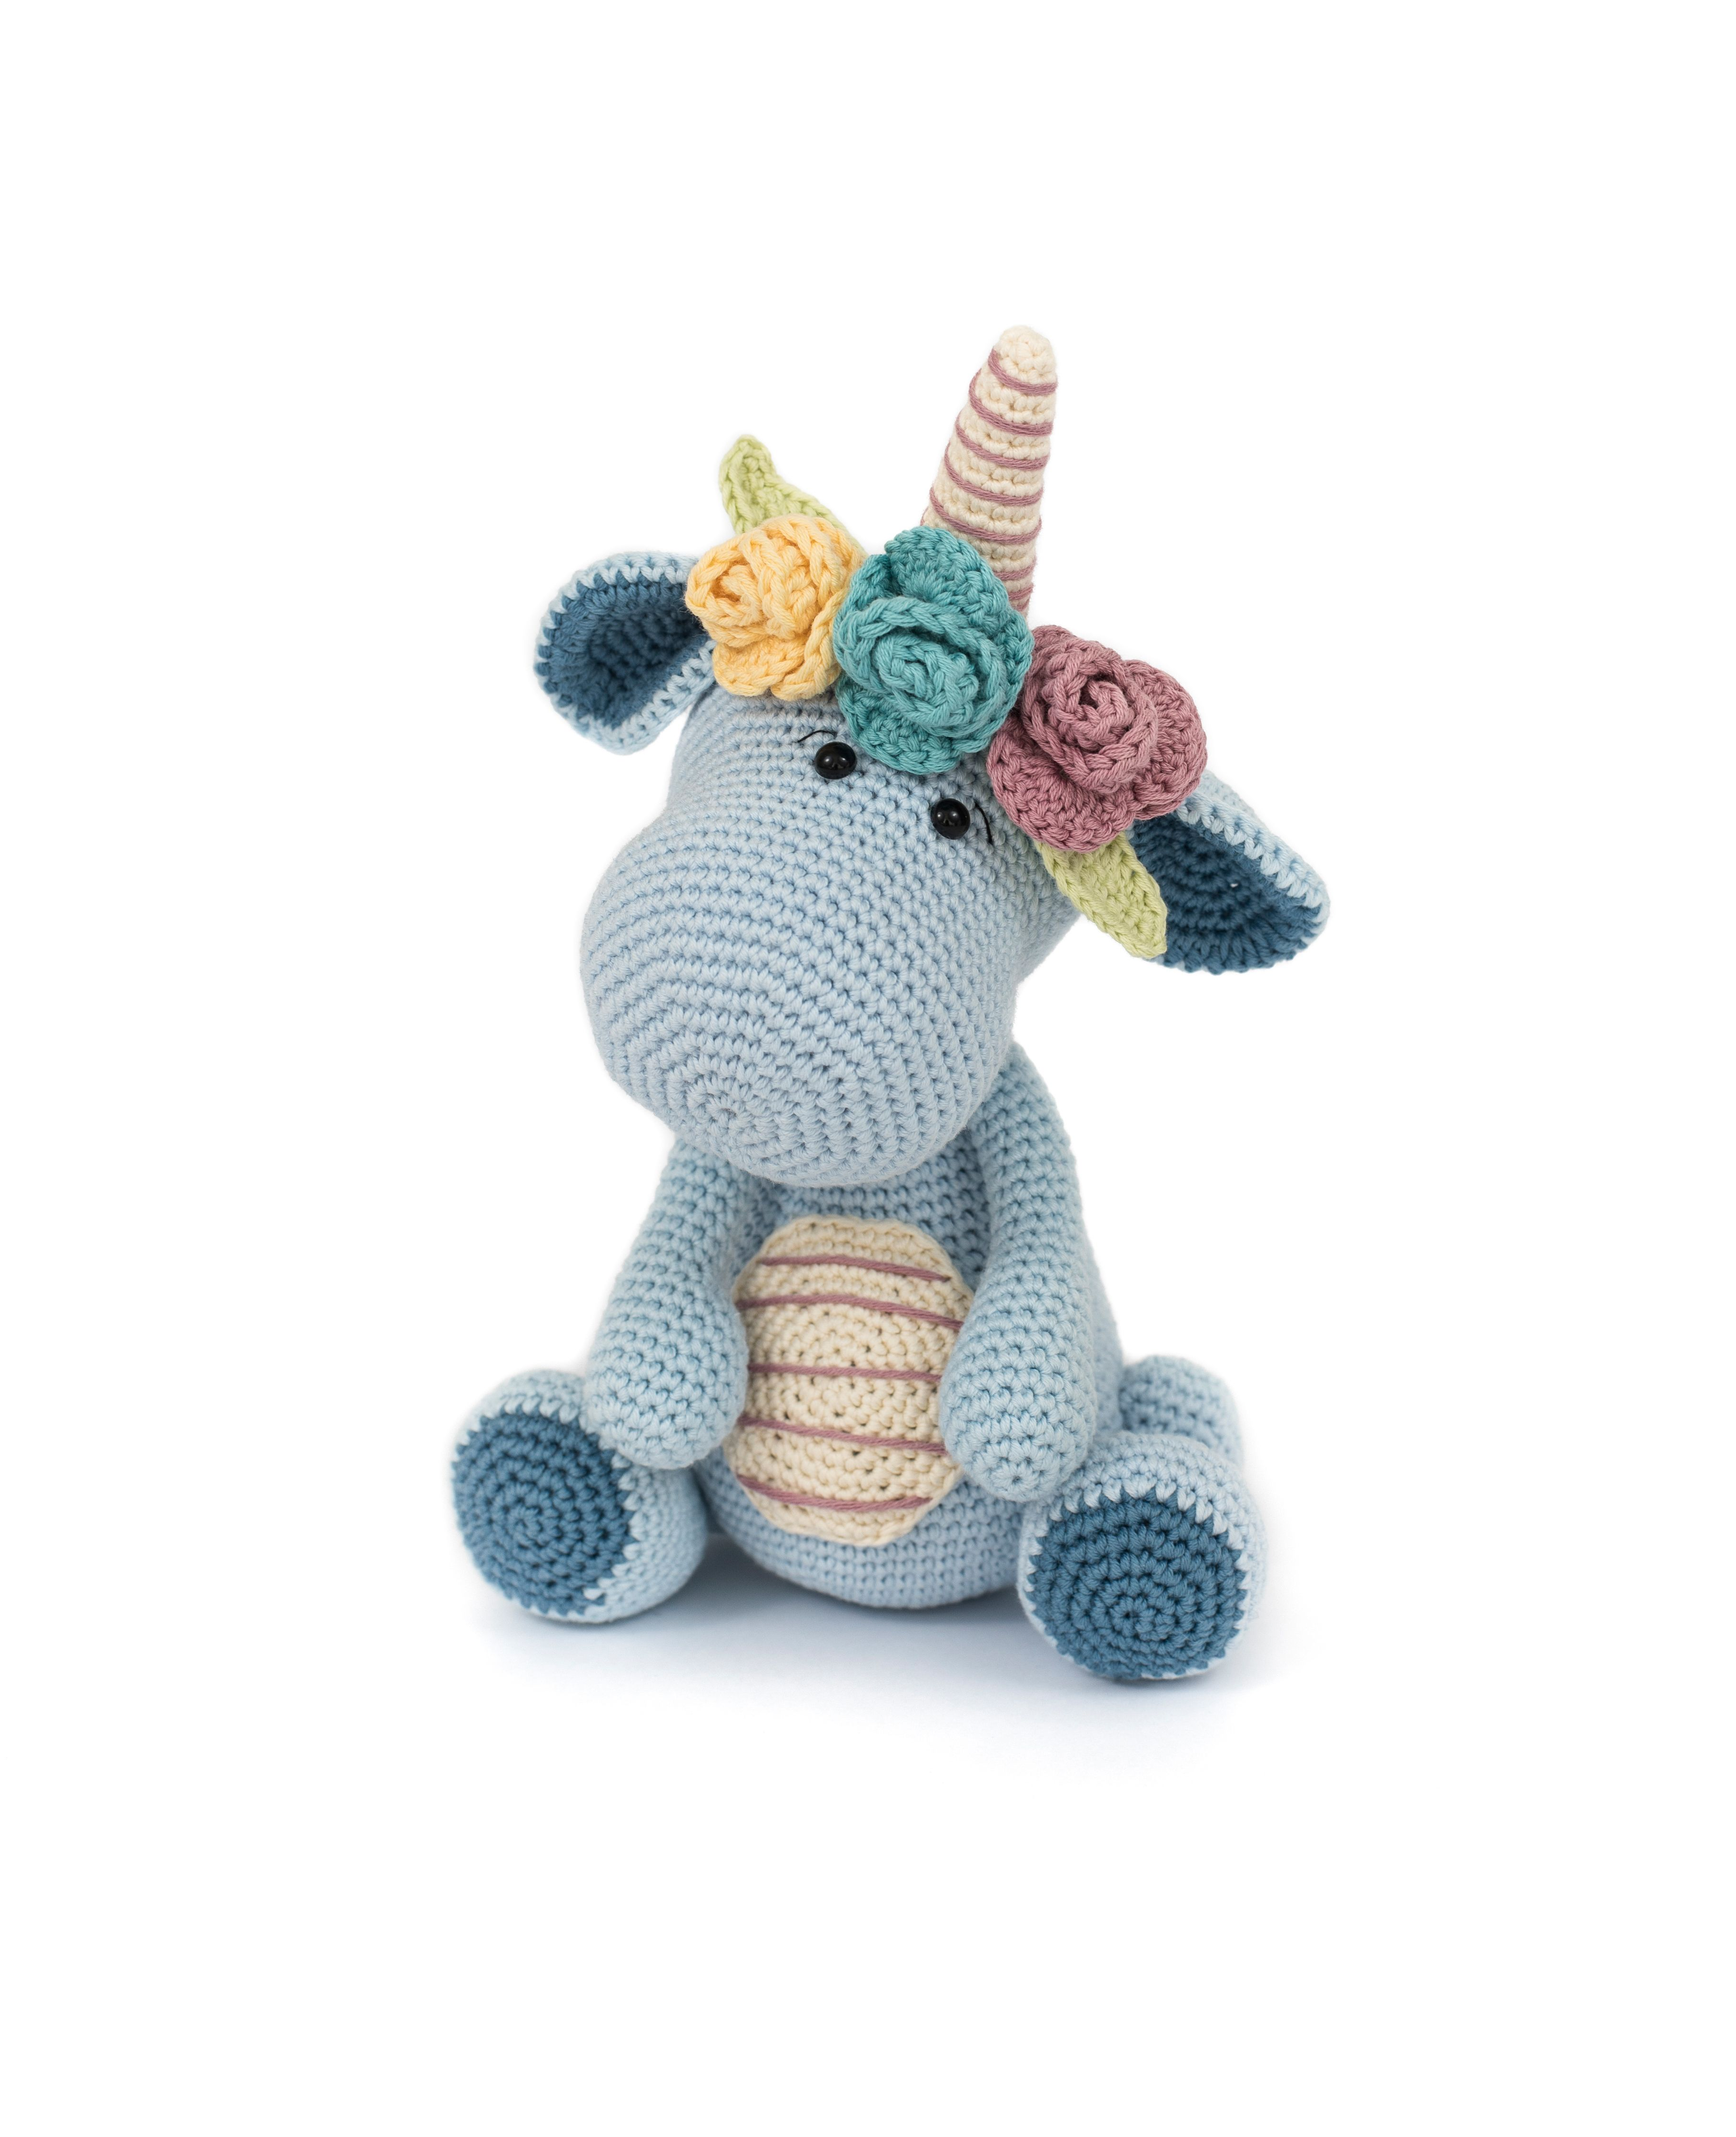 Bobby the Dinocorn by LittleAquaGirl - crochet pattern in the book ...